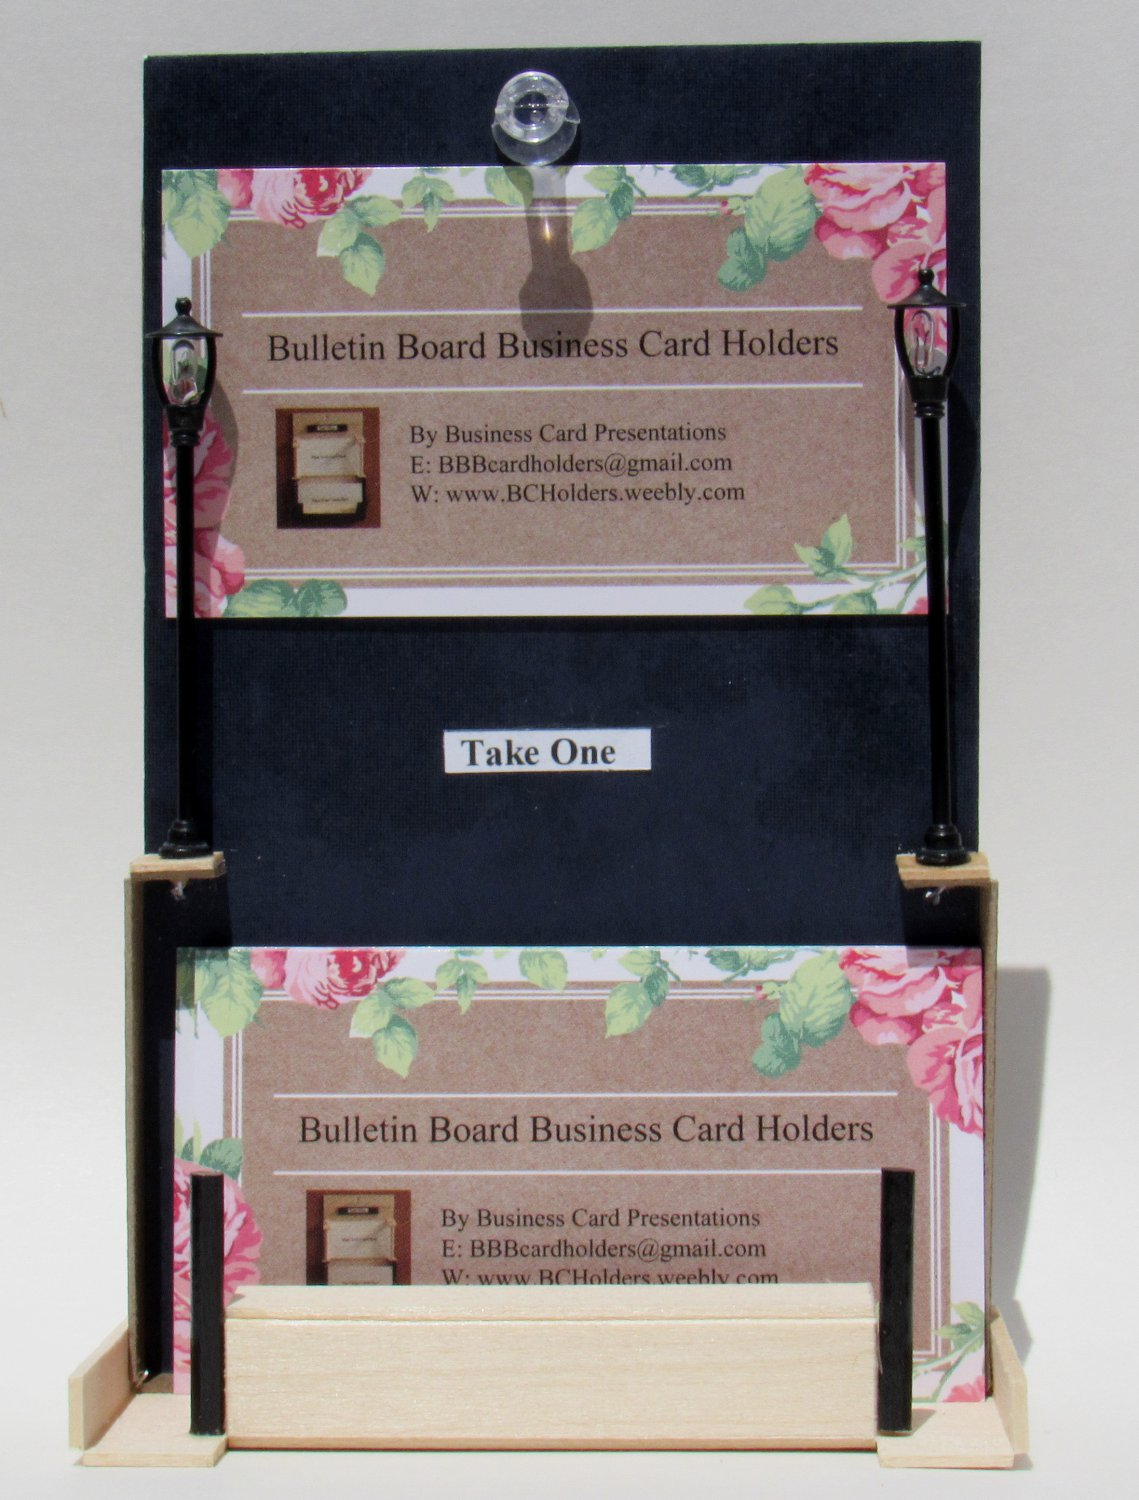 Handmade Bulletin Board Business Card Holders. Small Bathroom Decorations Pictures. Gender Reveal Ideas For Grandma. Costume Ideas For Halloween. Gift Ideas For Xbox Lovers. Table Top Quiz Ideas. Nursery Ideas Cheap. Napoleon Fireplace Ideas. Party Food Ideas Jamie Oliver